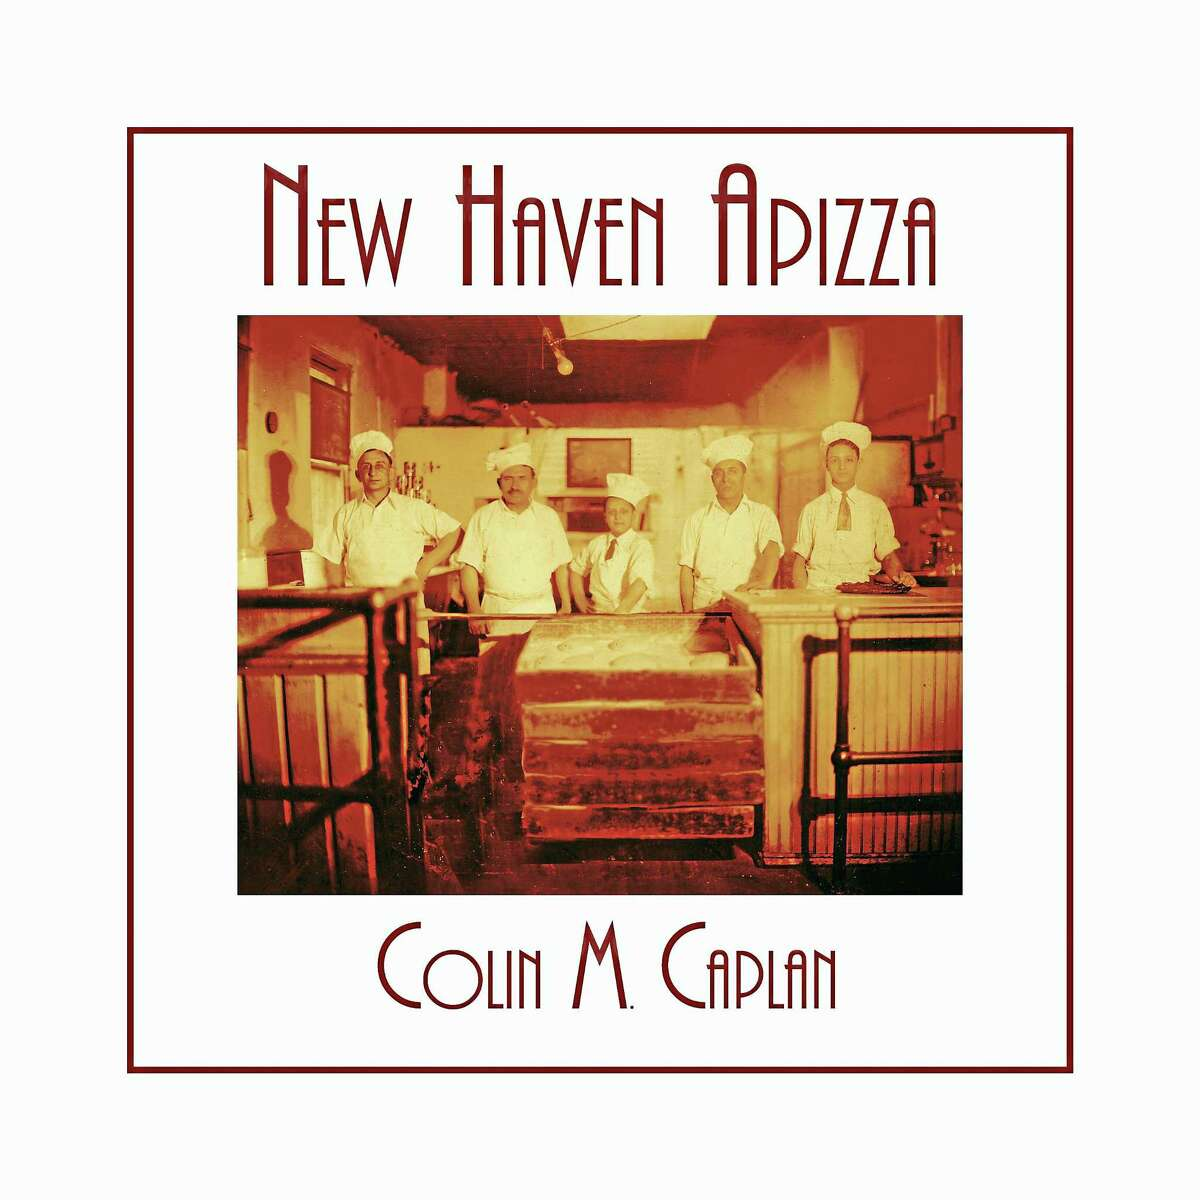 """The cover of """"New Haven Apizza"""" shows a view circa 1930 of Frank Pepe's original pizzeria, at what is now The Spot. Left to right: Frank Pepe; his brother, Pietro Alessio Pepe; Frank's nephew, Tony Consiglio; Frank's cousin, Tommy Sicignano; and Frank's nephew, Sally Consiglio, who later owned Sally's Apizza."""